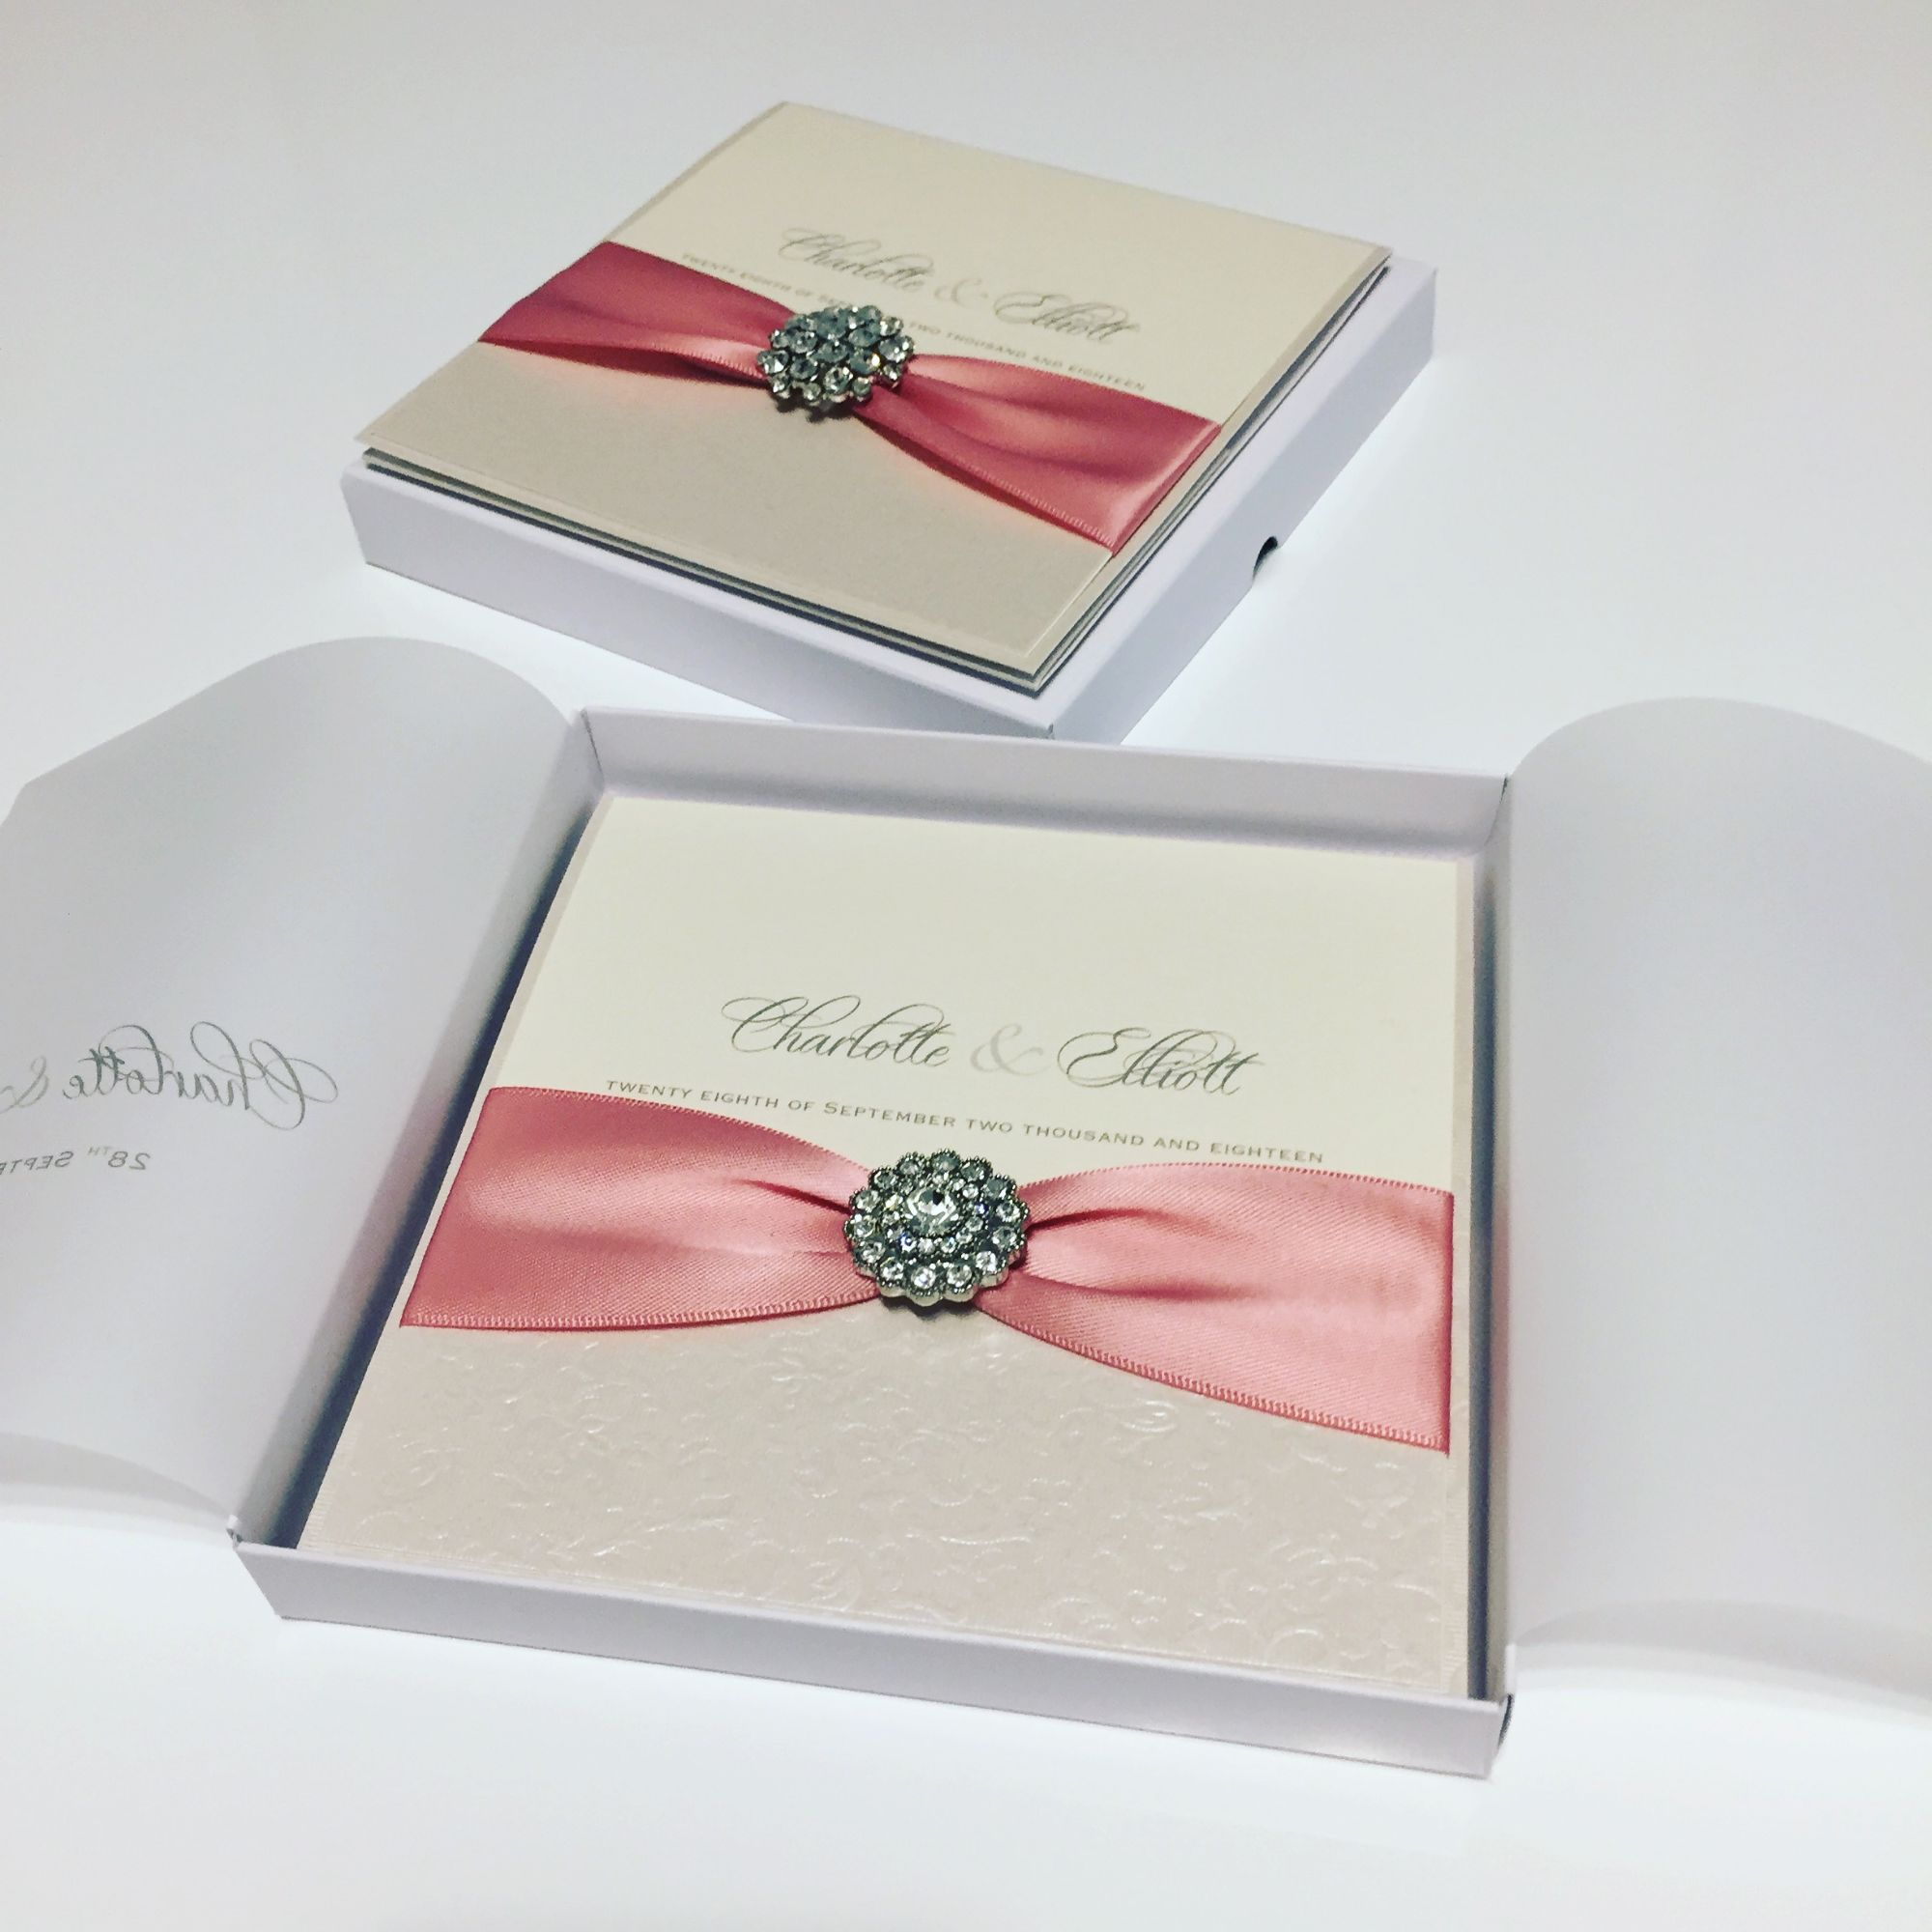 Boxed wedding invitations with dusky pink ribbon and vintage crystal brooch